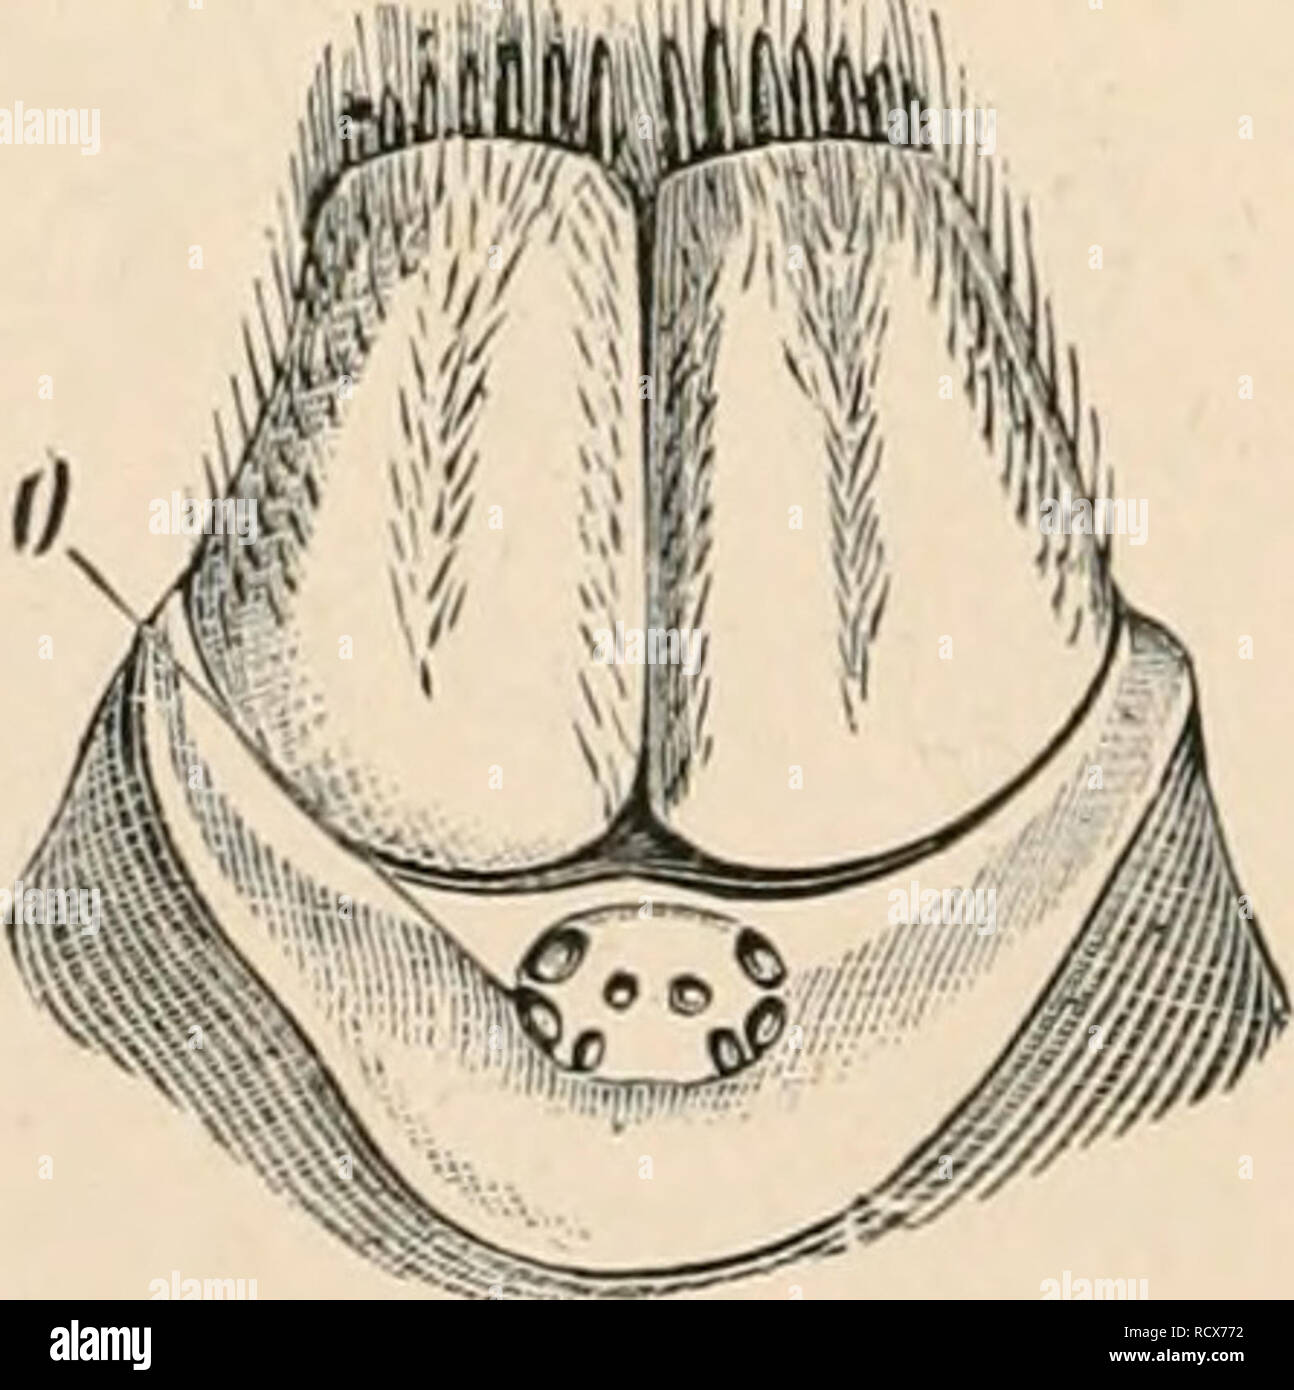 """. Elementary text-book of zoology. Zoology. different spiders (after Lebert). a, Eprira ; //, Tegfimrin ; c, Doloiitriln; <1, Sal- ticns. The alimentary canal (tig. 400) lungs; F, lamella? of the lungs; bemns beneath the upper lip with an St, Sf, stigmata; Oc, ovary; Sir, """" , spinning papilla?. ascending pliaryngeal portion ot oesophagus, into which a saccular pha- ryngeal gland opens (salivary gland). The narrow oesophagus, before passing into the midgut or intestine, is dilated to form a suctorial stomach, which is furnished with powerful muscles arising from the dorsal part of the cephal - Stock Image"""